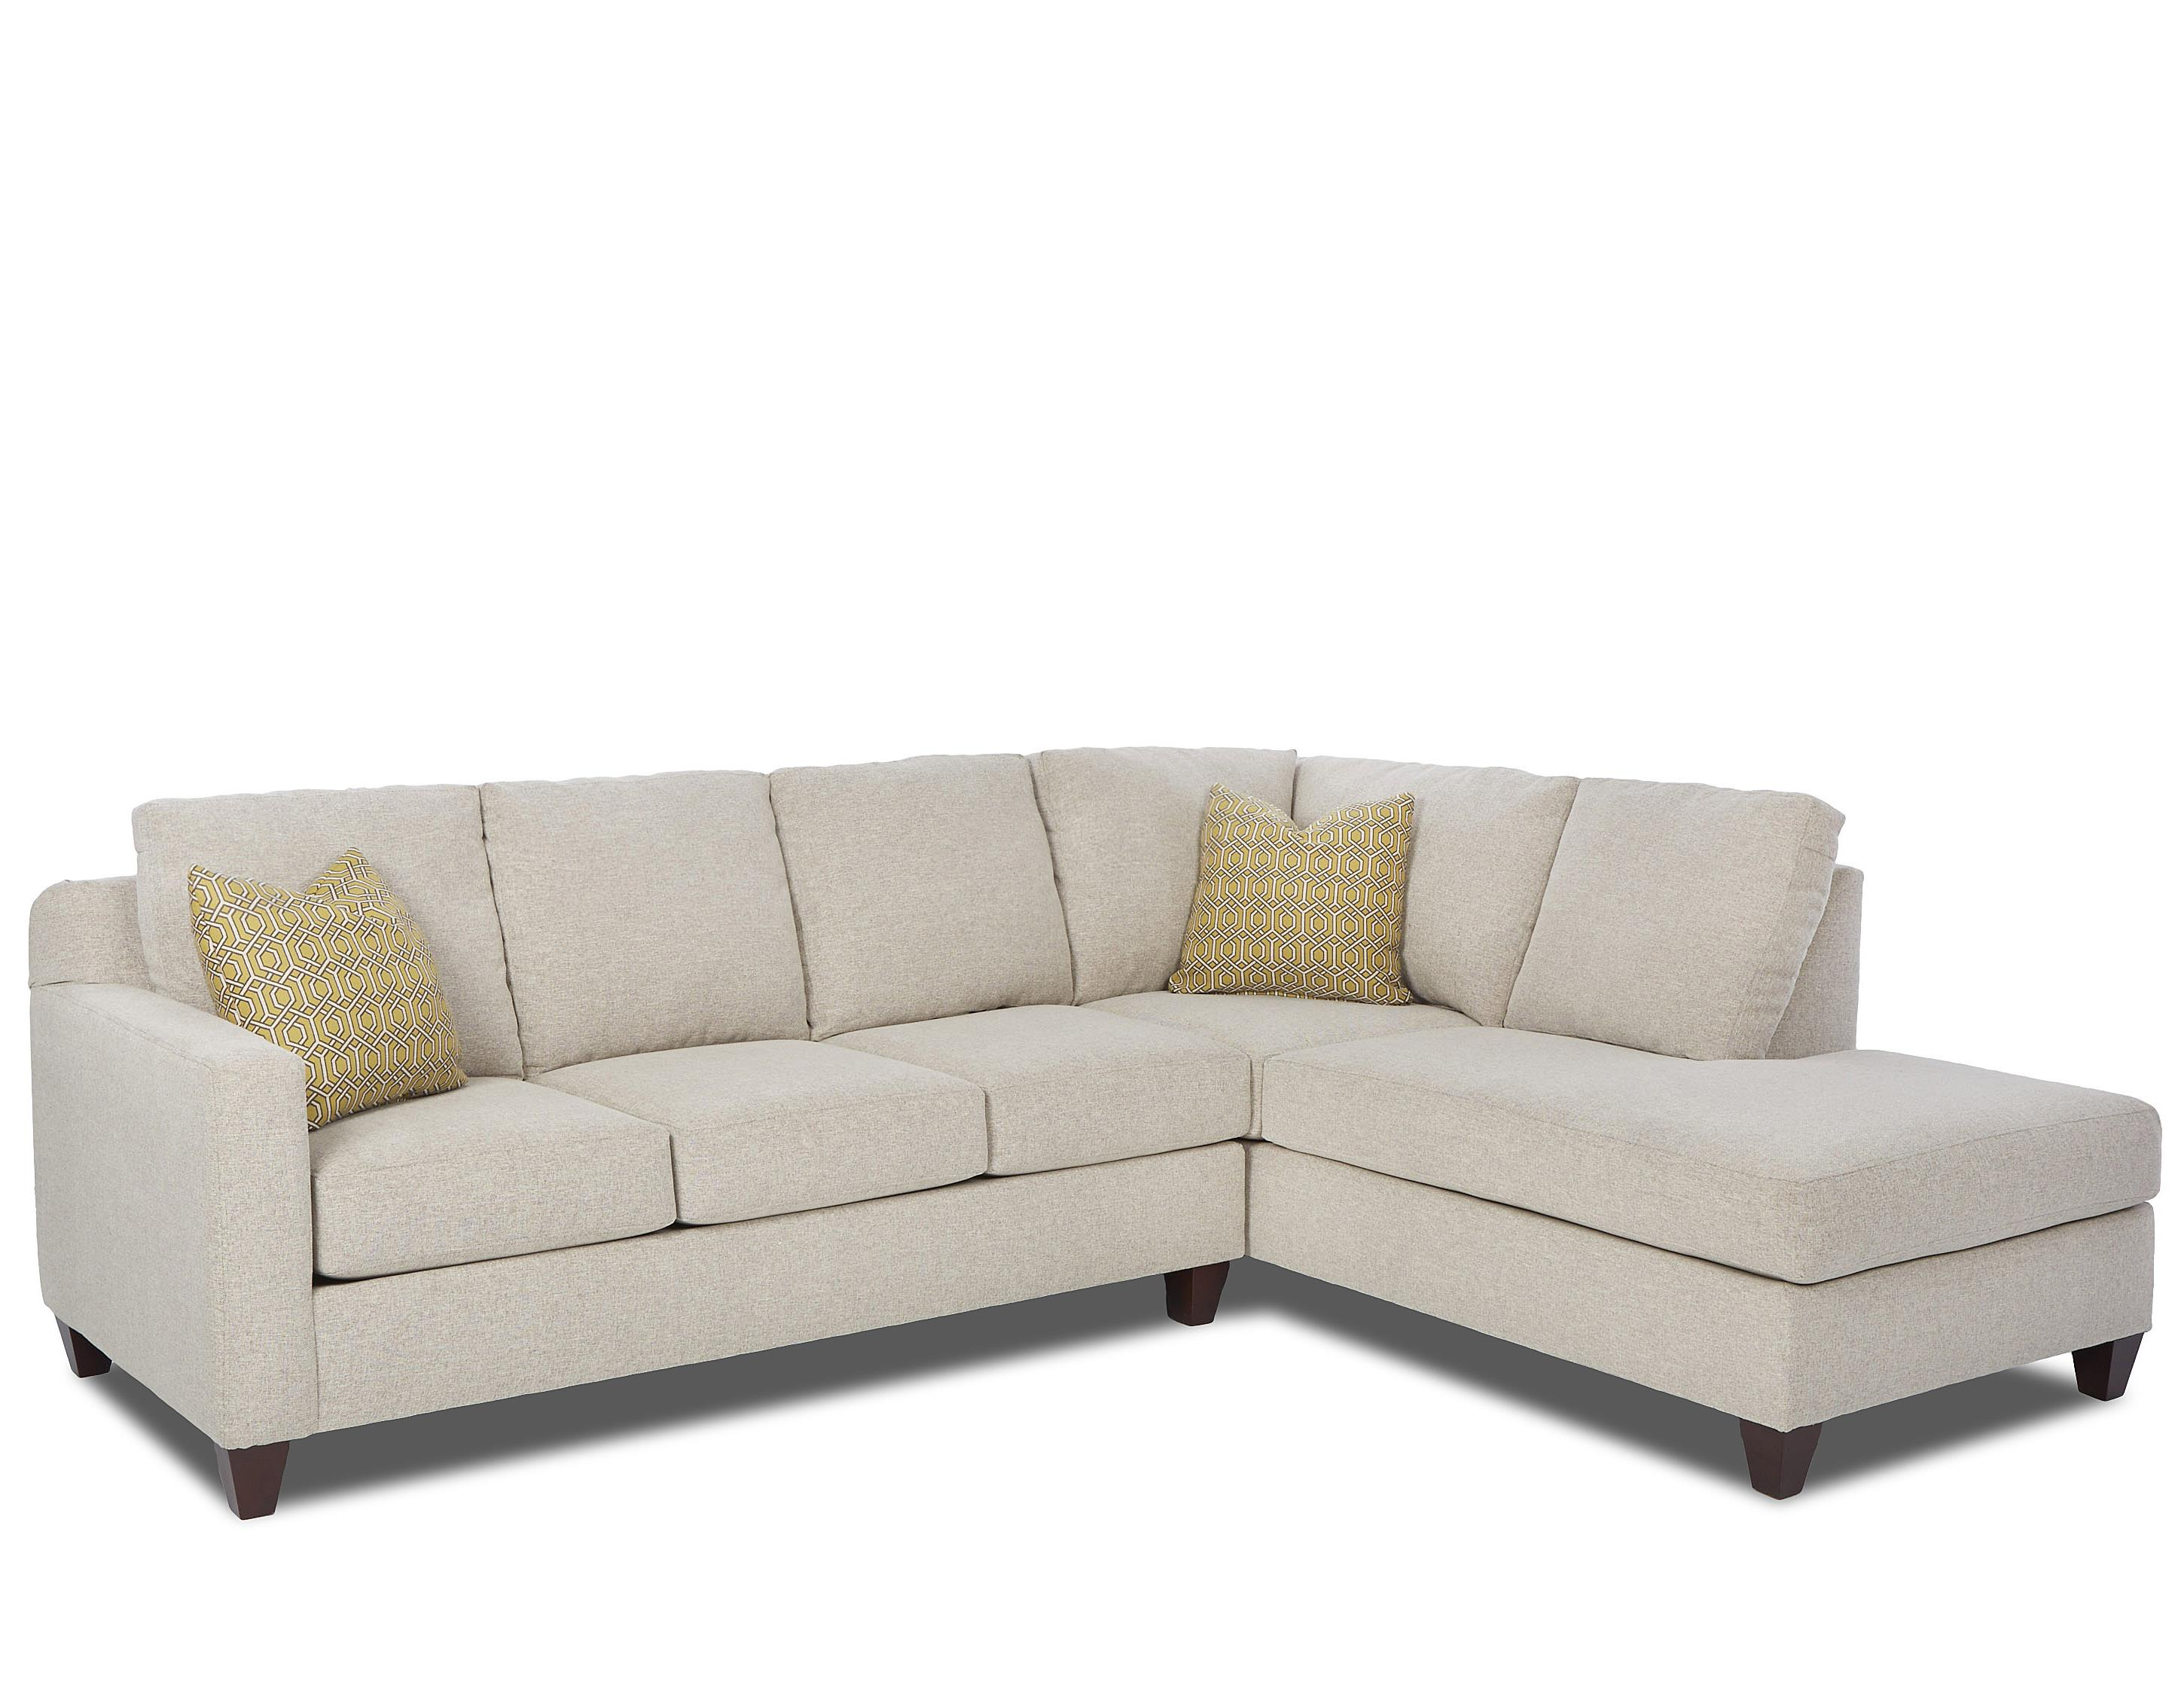 Bosco Sectional by Klaussner at Northeast Factory Direct